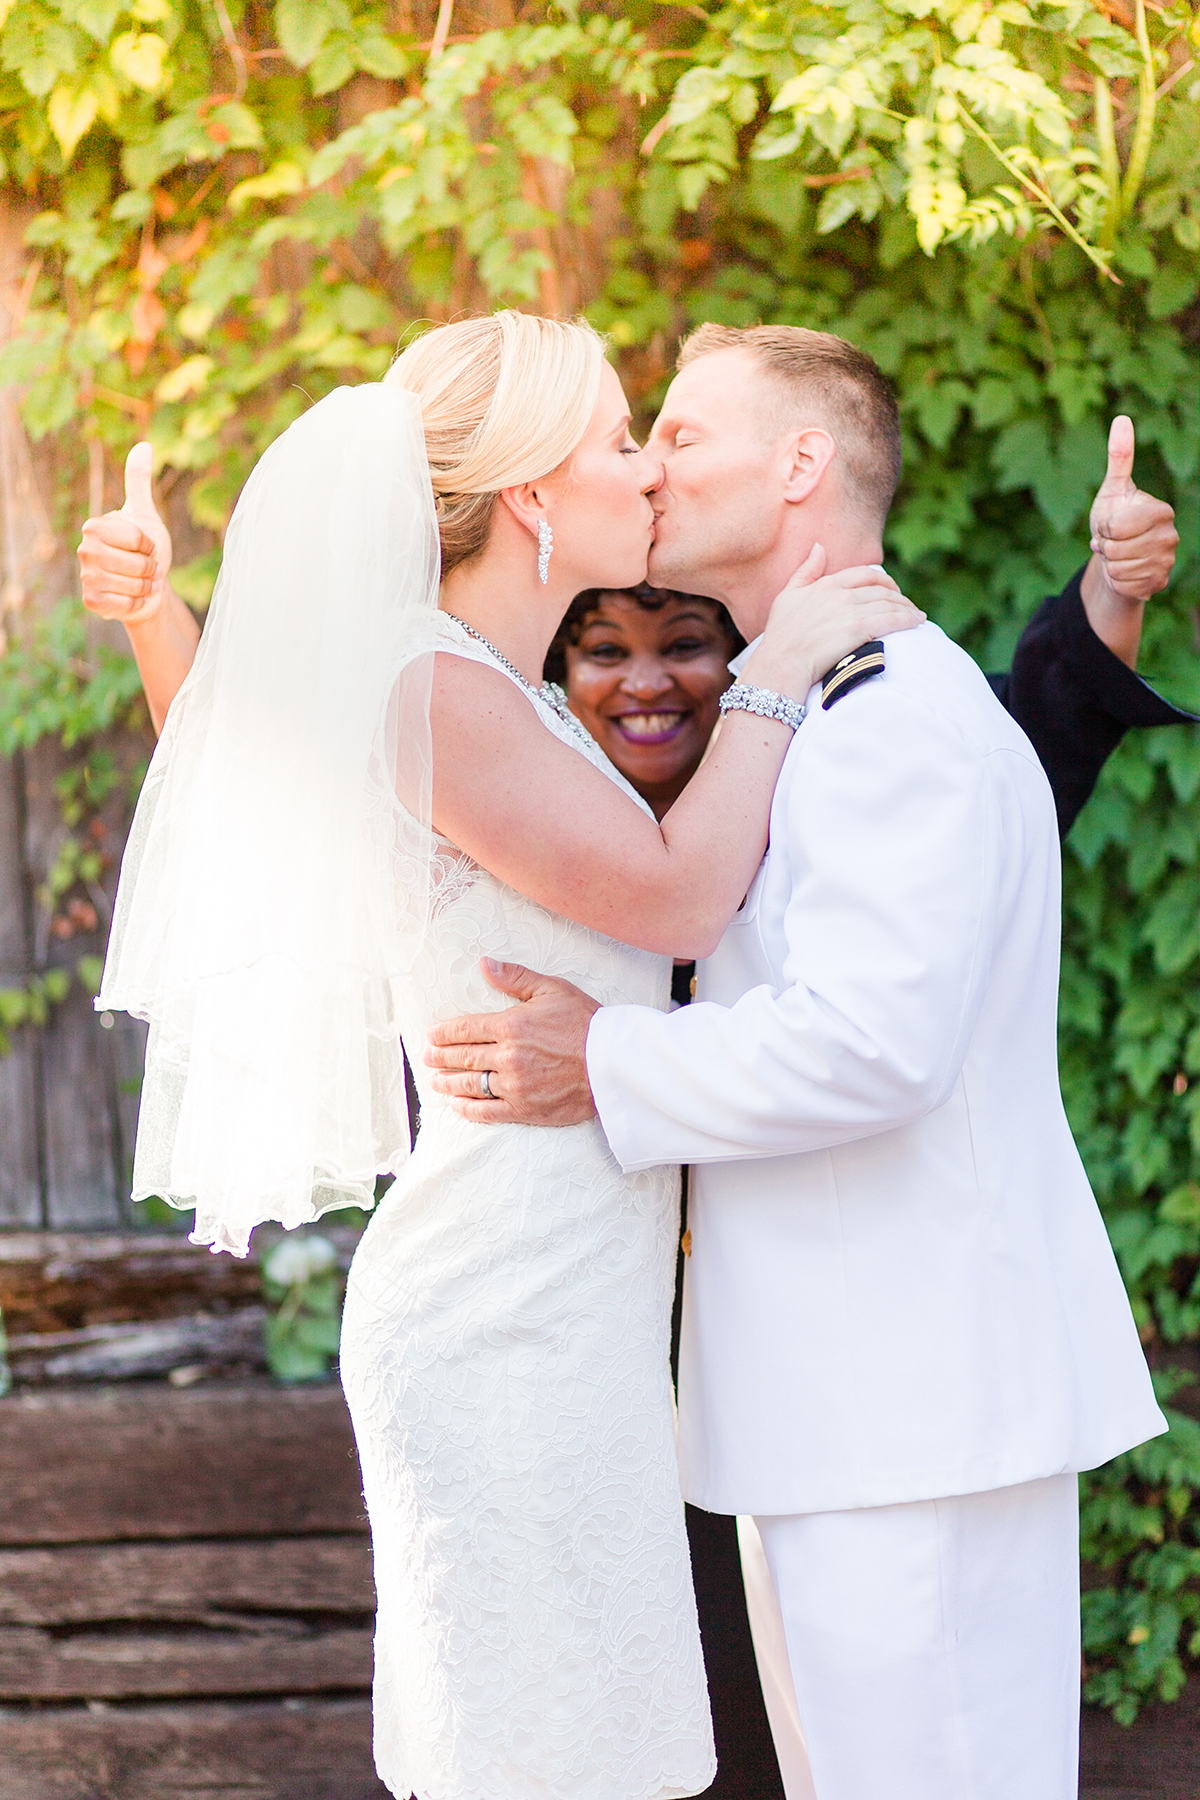 Super cute photo of the bride and groom after saying I Do - love how the officiant is framed below their kiss / from a Washington DC Military Elopement Wedding / photo by Marianne Blackham Photography